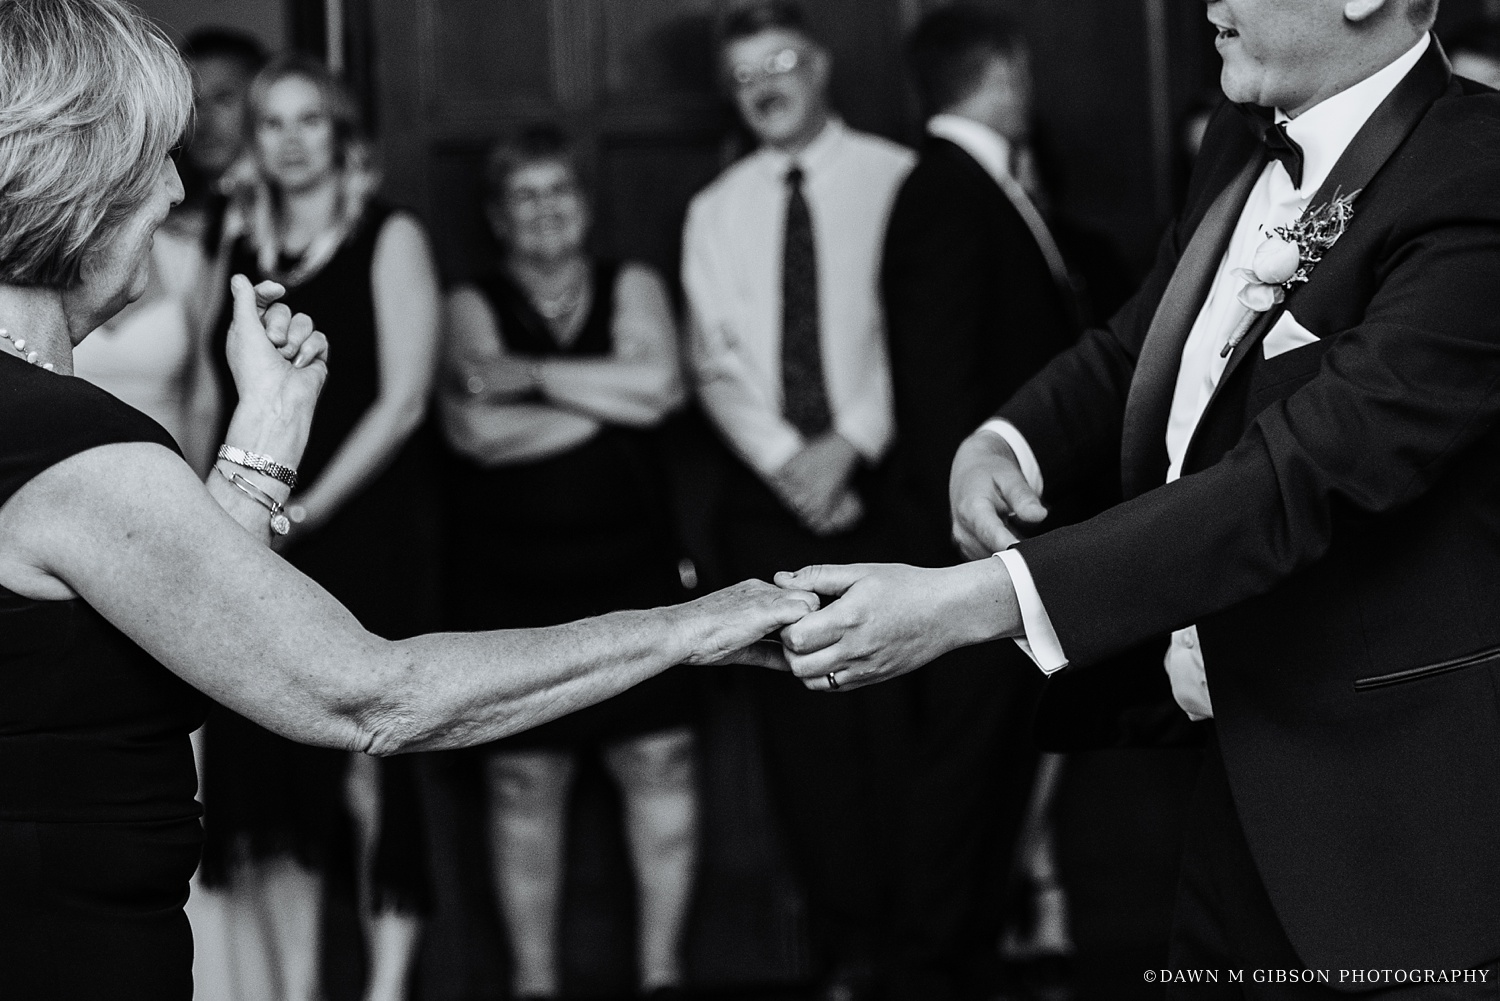 buffalo_wny_rochester_wedding_photographer_dawnmgibsonphotography_strathallan_colgate_rochester_divinity_rochester_wedding_venues_0084.jpg